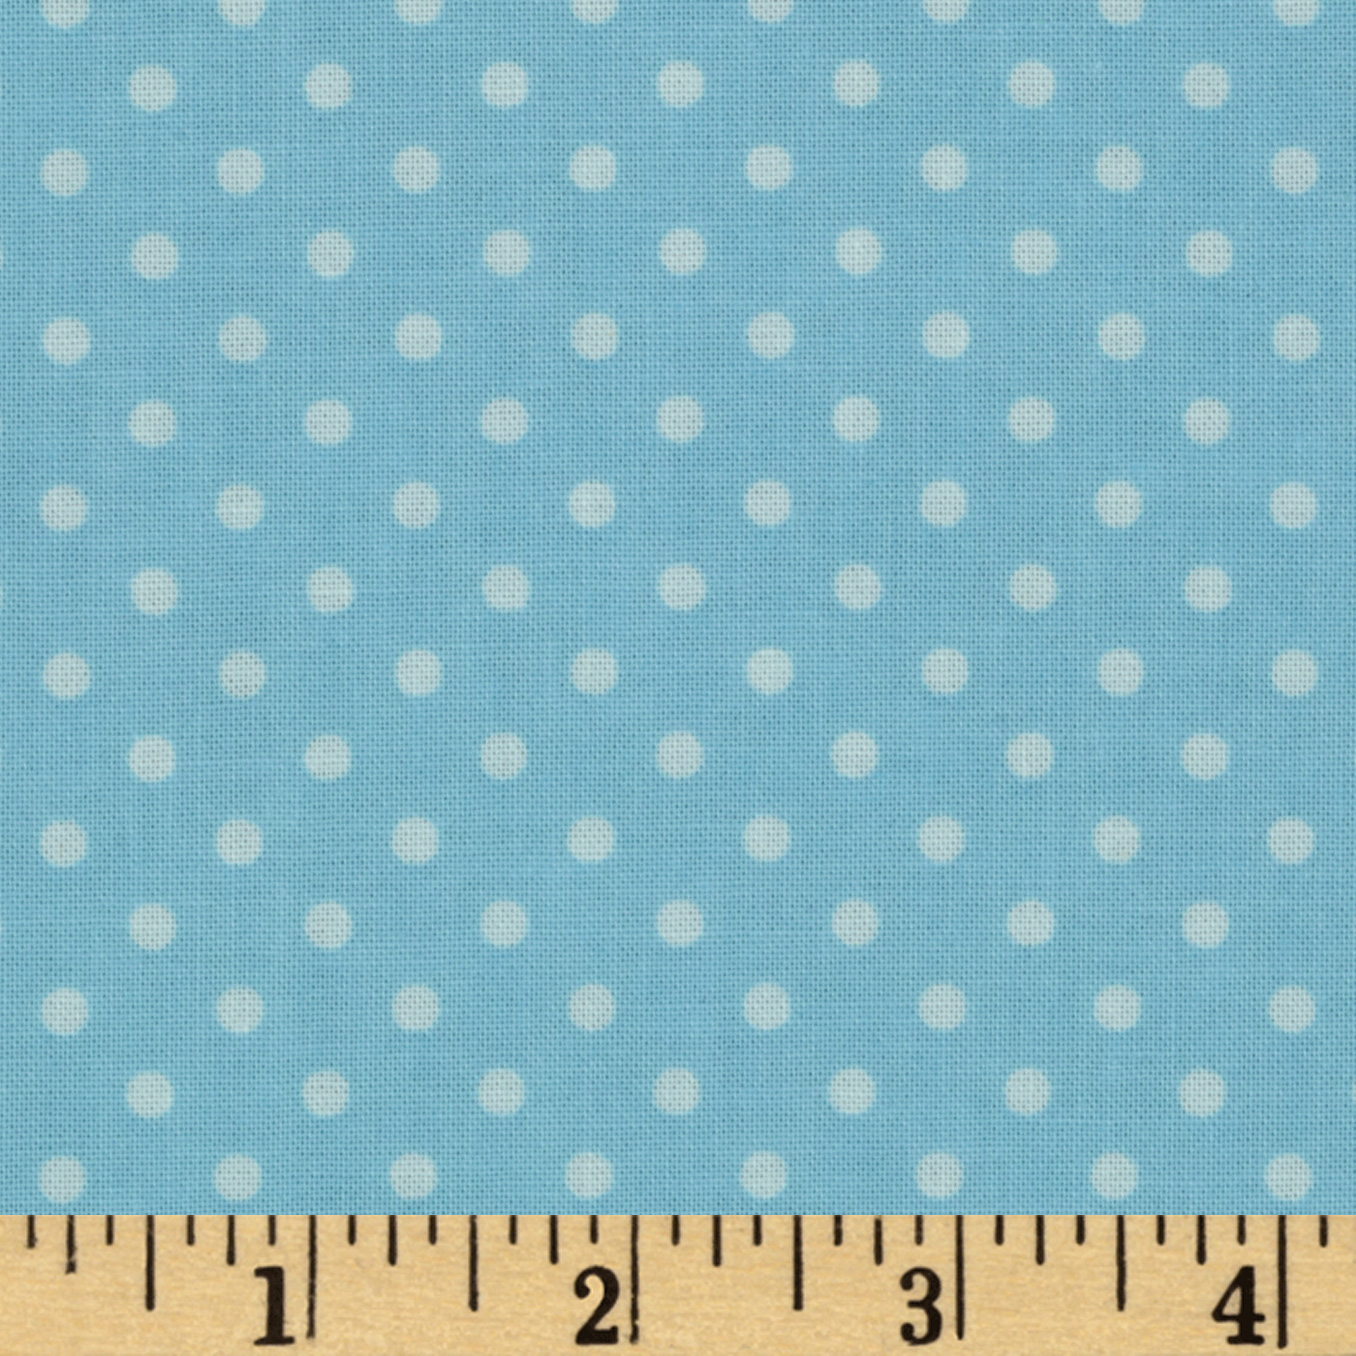 Bumper-2-Bumper Dot Light Blue